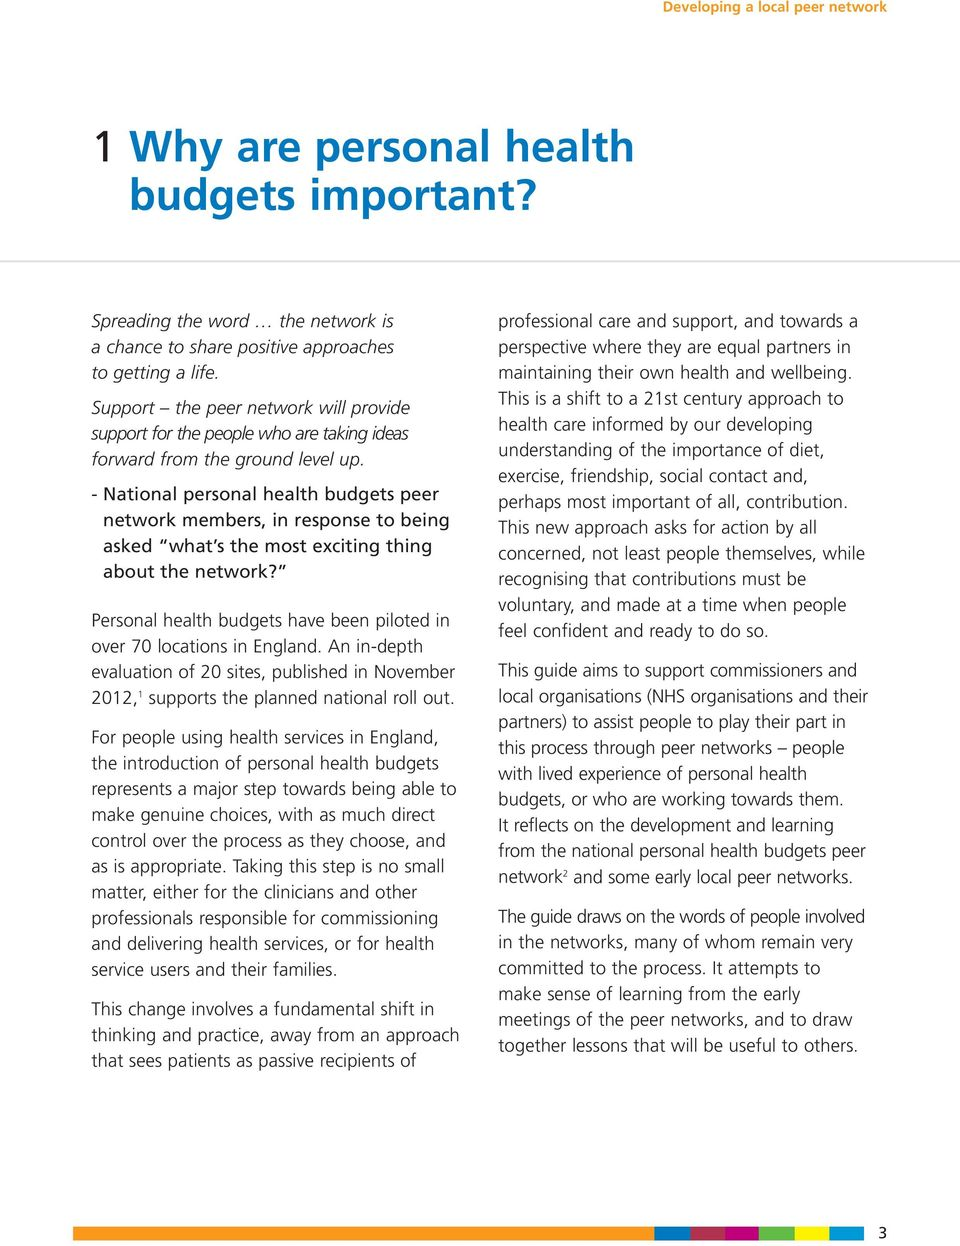 - National personal health budgets peer network members, in response to being asked what s the most exciting thing about the network?